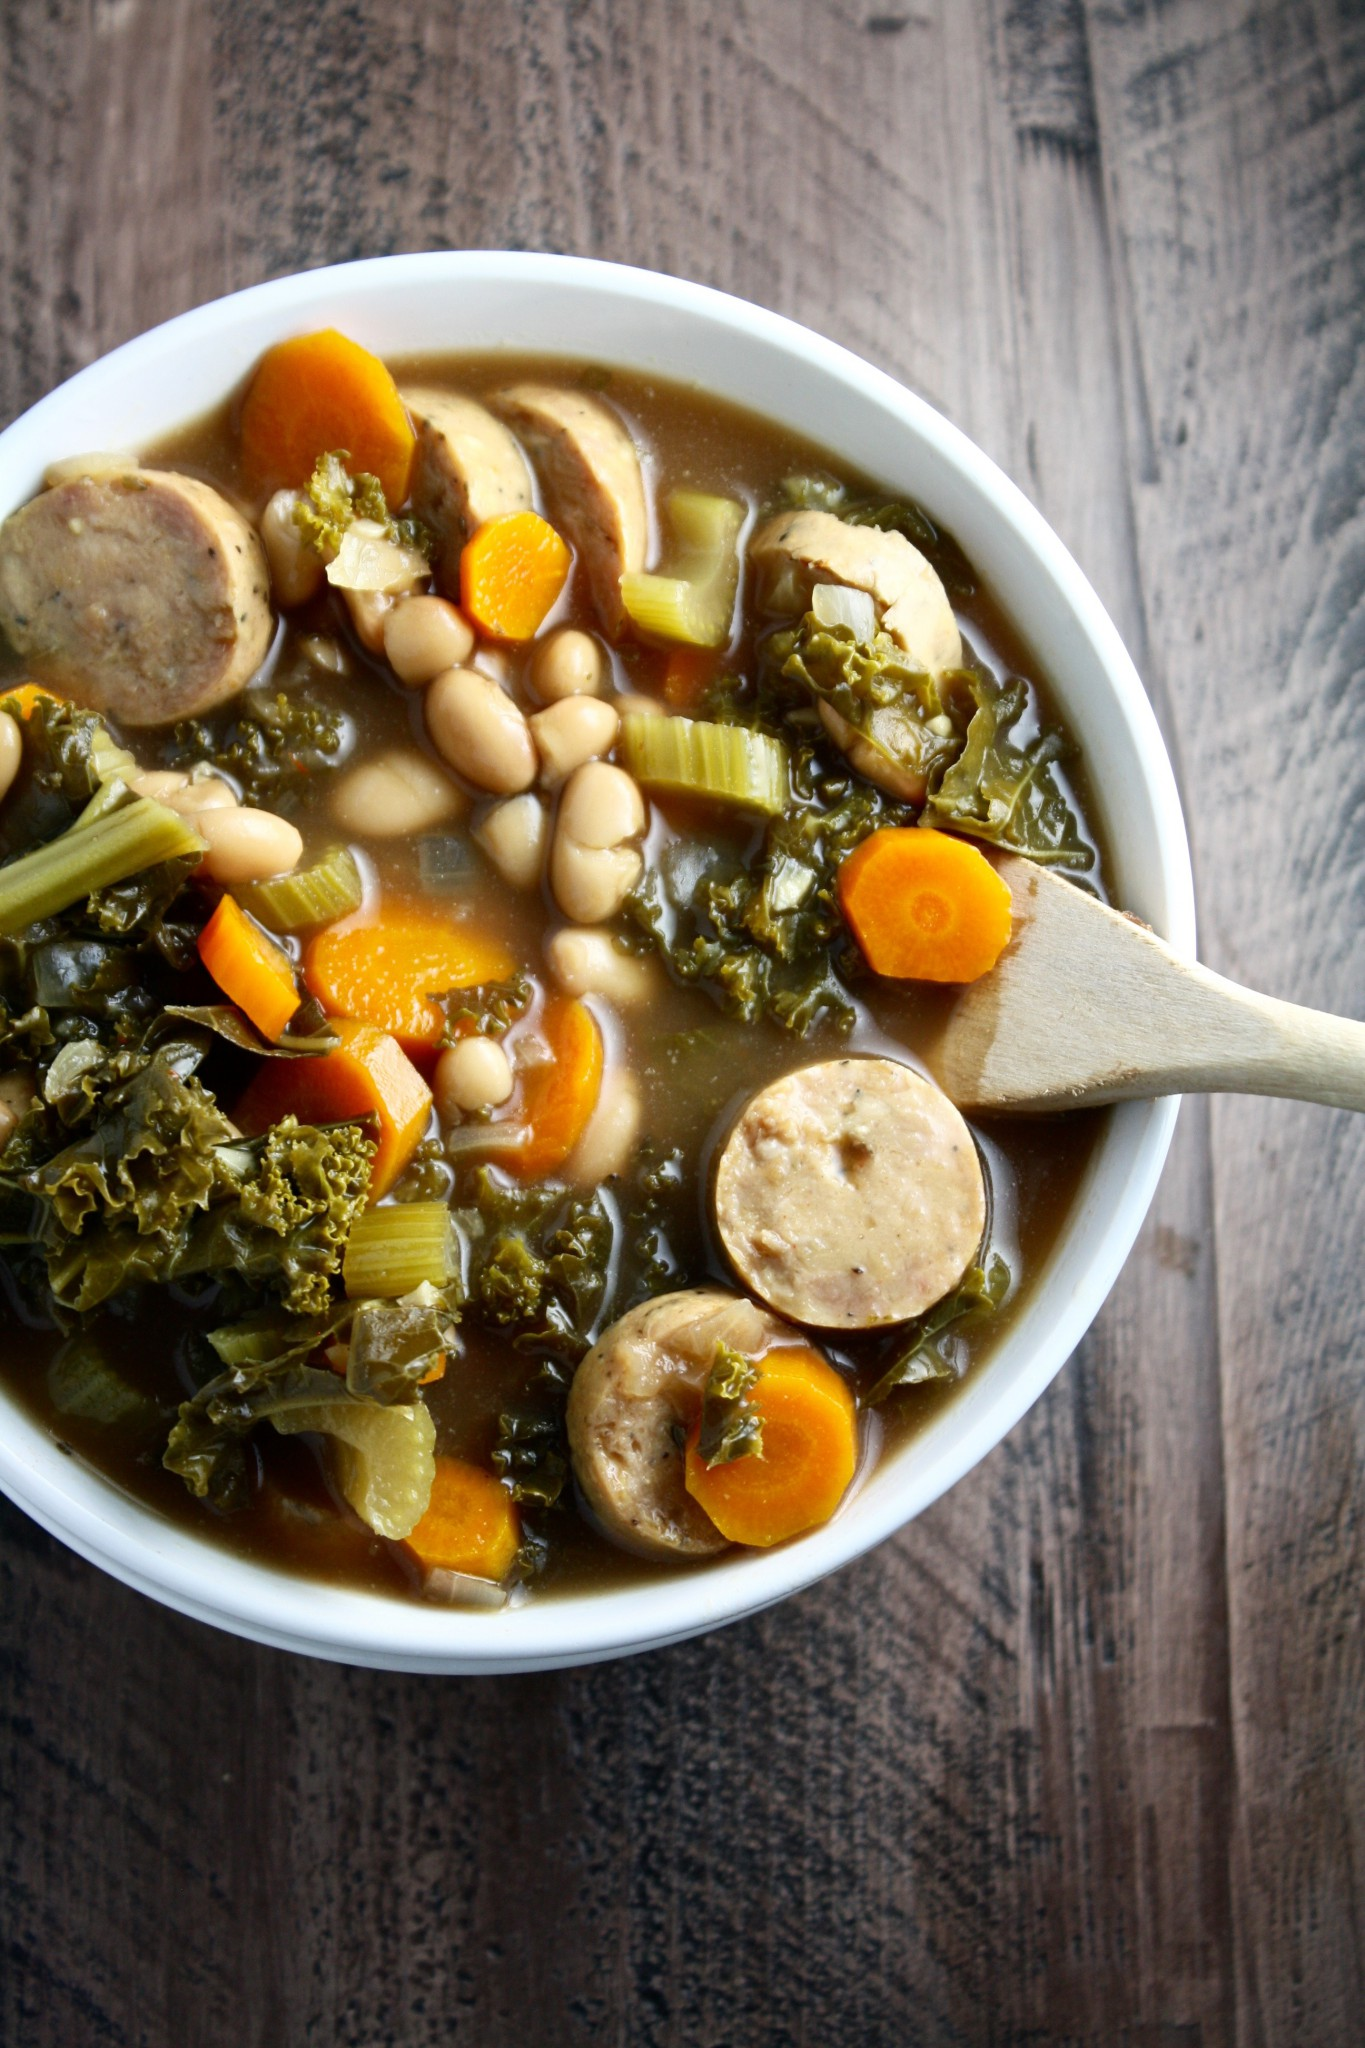 tuscan white bean, kale and sausage slow cooker soup - easy, delicious and filling! // cait's plate